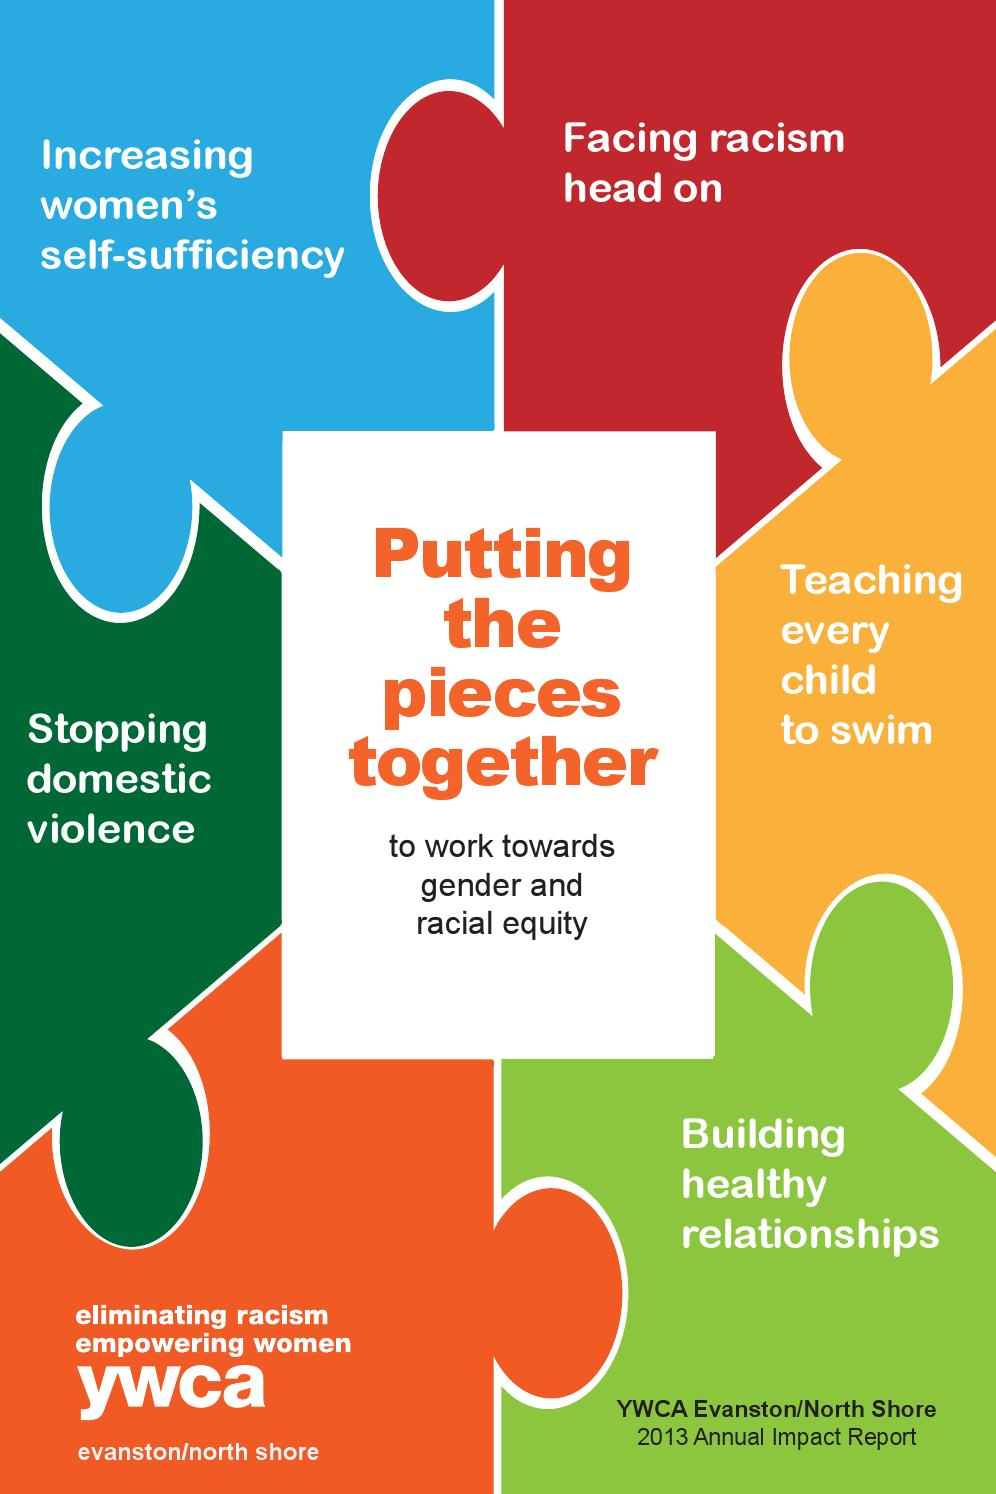 what does ywca stand for